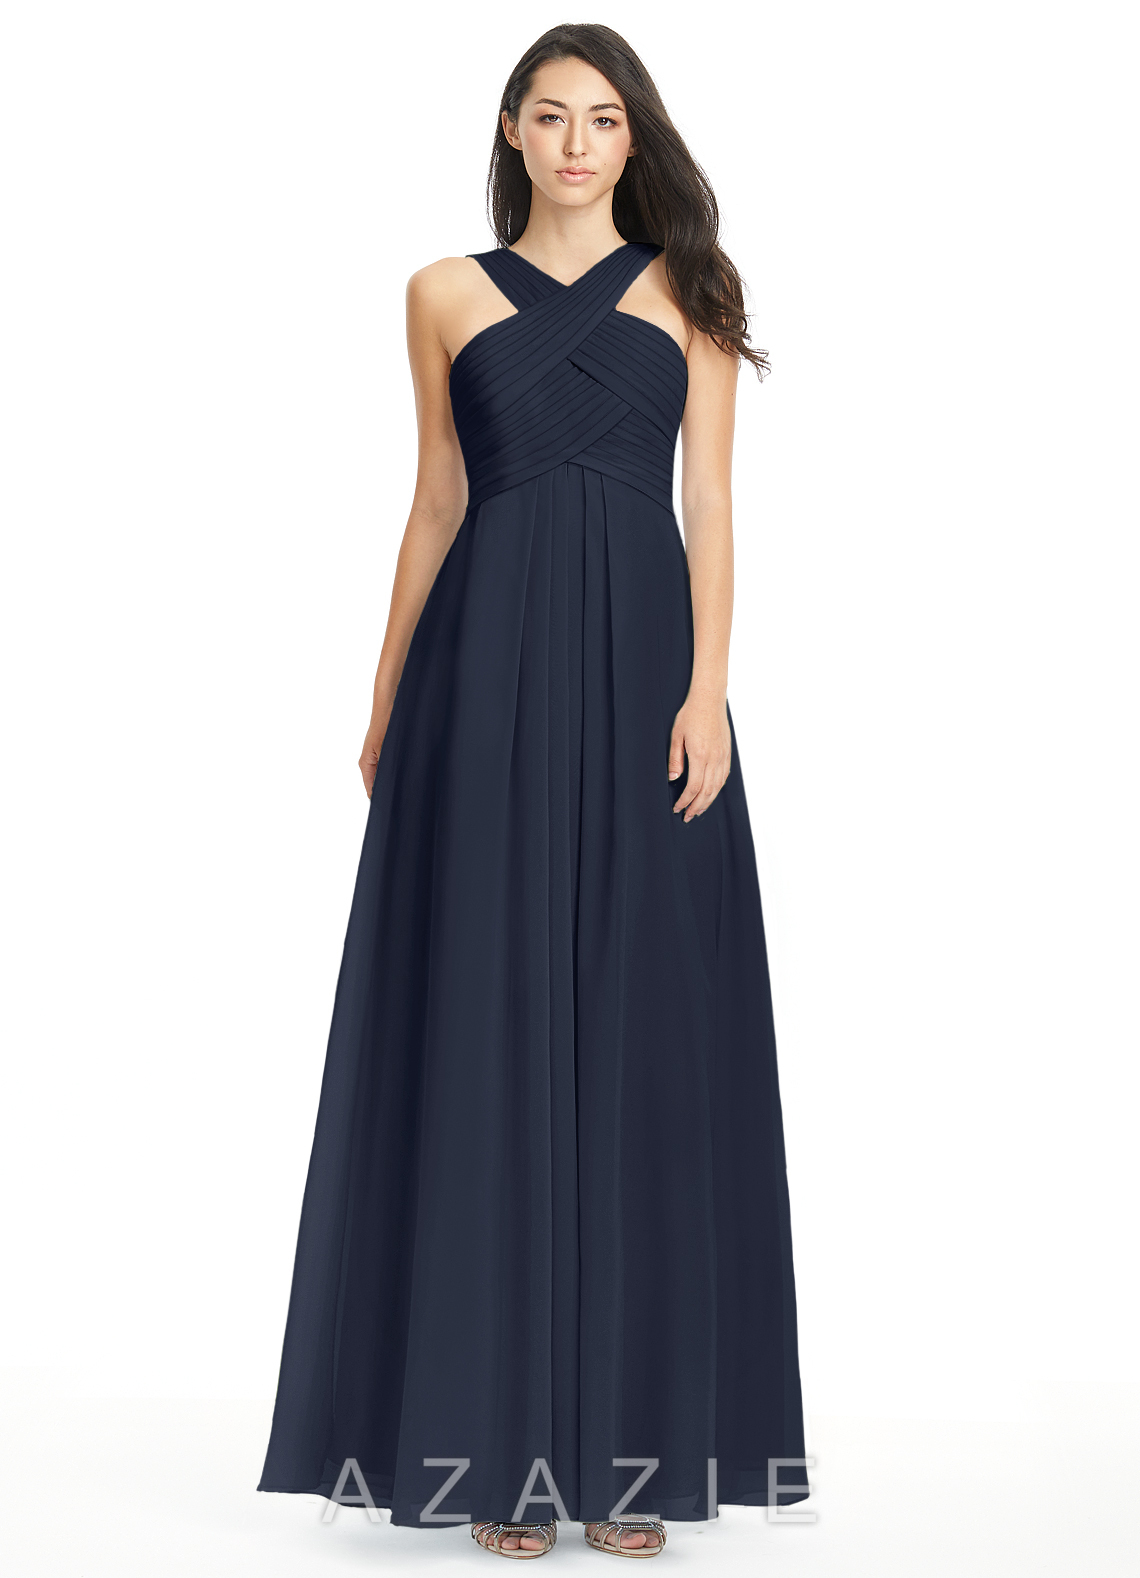 navy blue dress for wedding azazie kaleigh bridesmaid dress azazie 6115